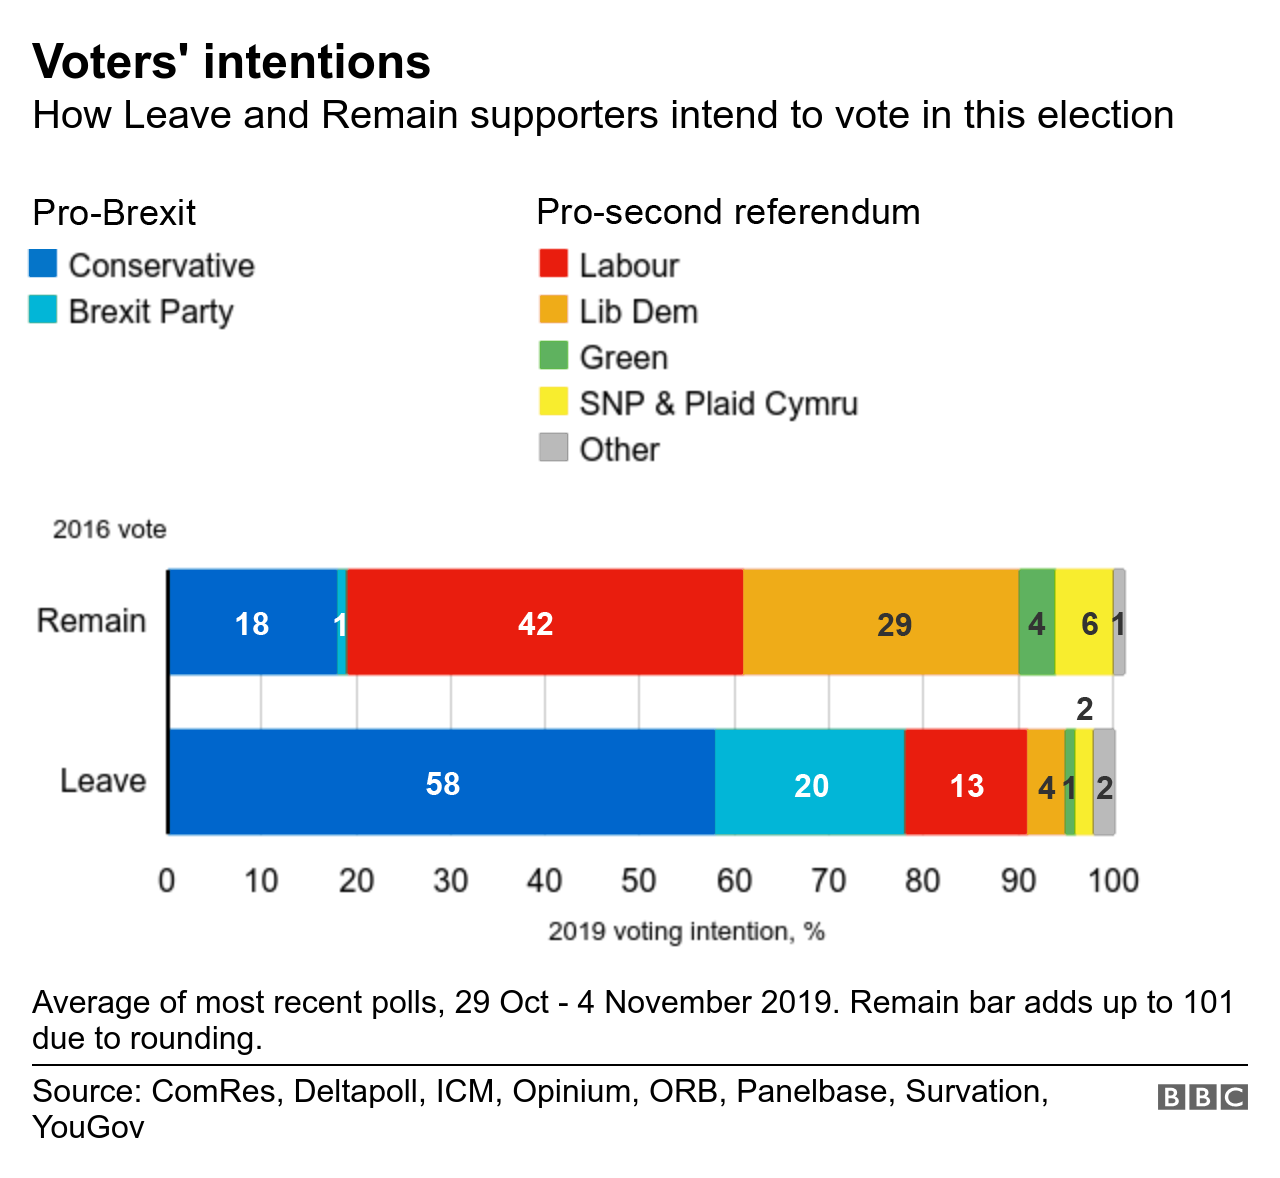 Voting intention by support for Leave and Remain